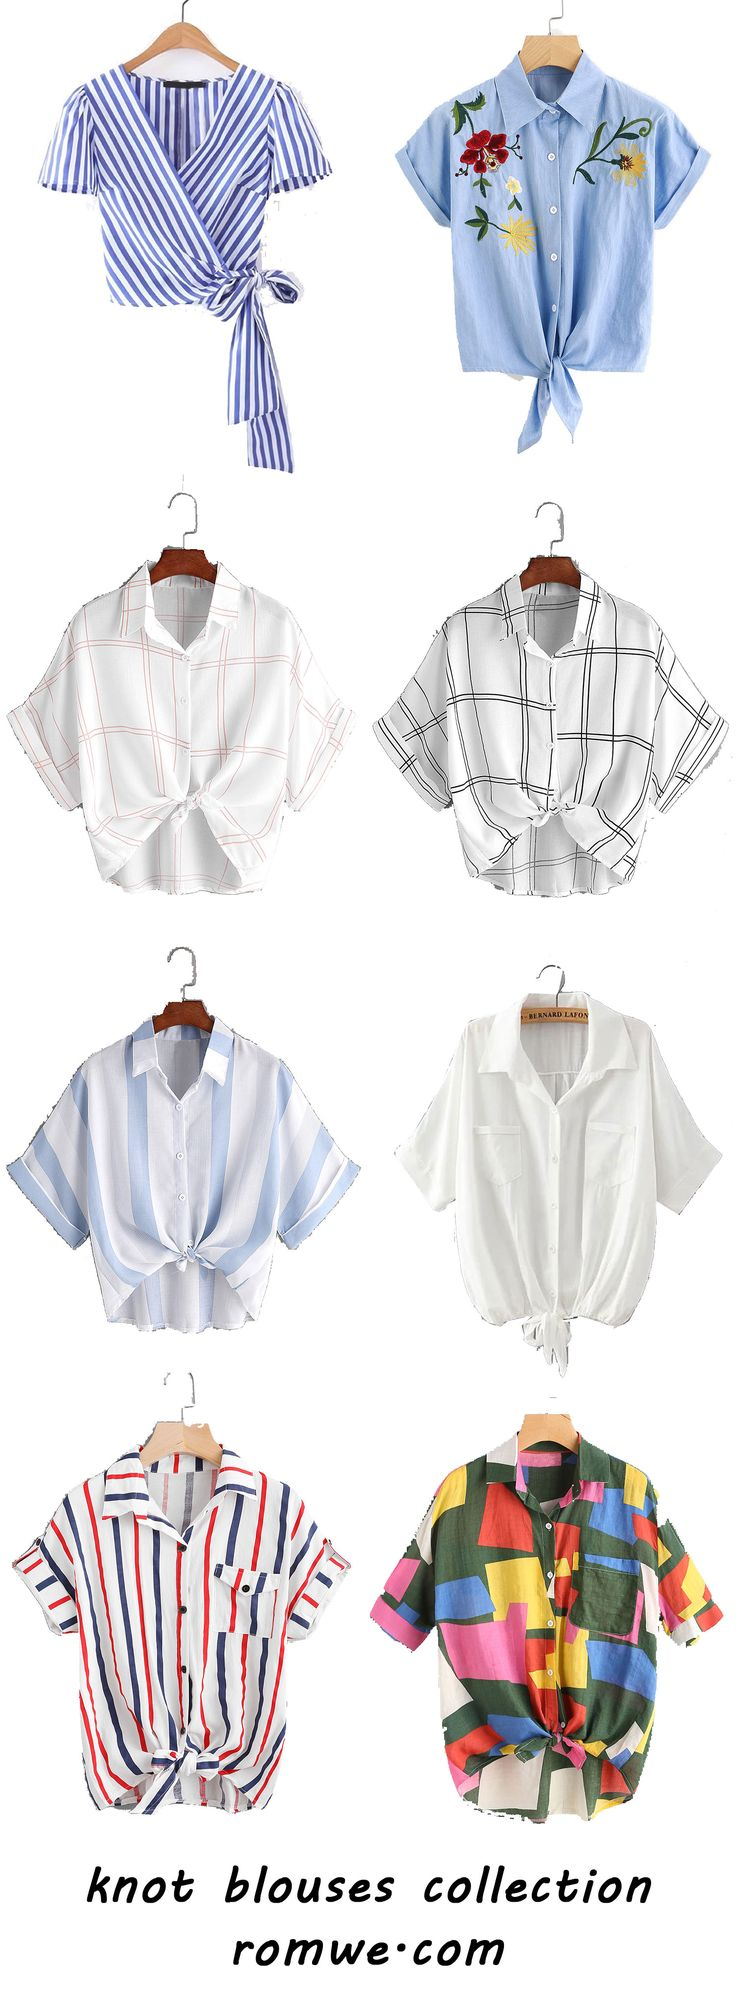 knot blouses collection for summer - romwe.com